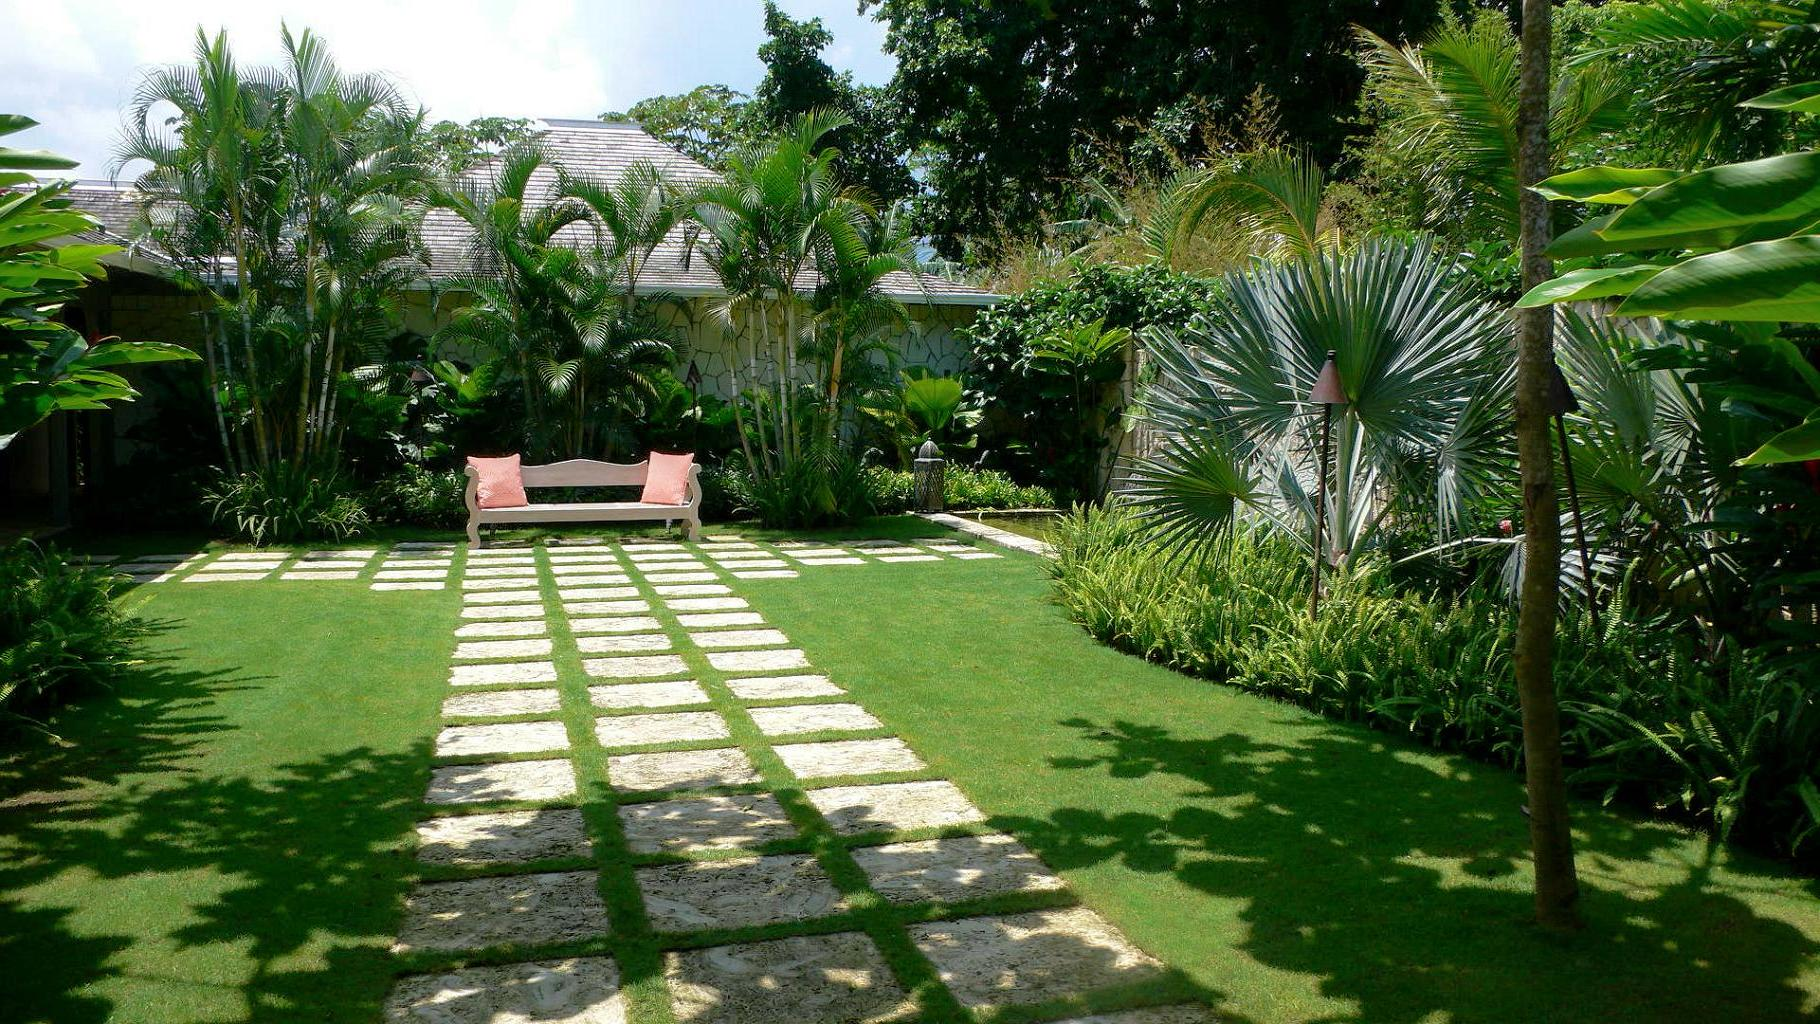 Tropical garden design landscaping in brisbane for Latest gardening ideas